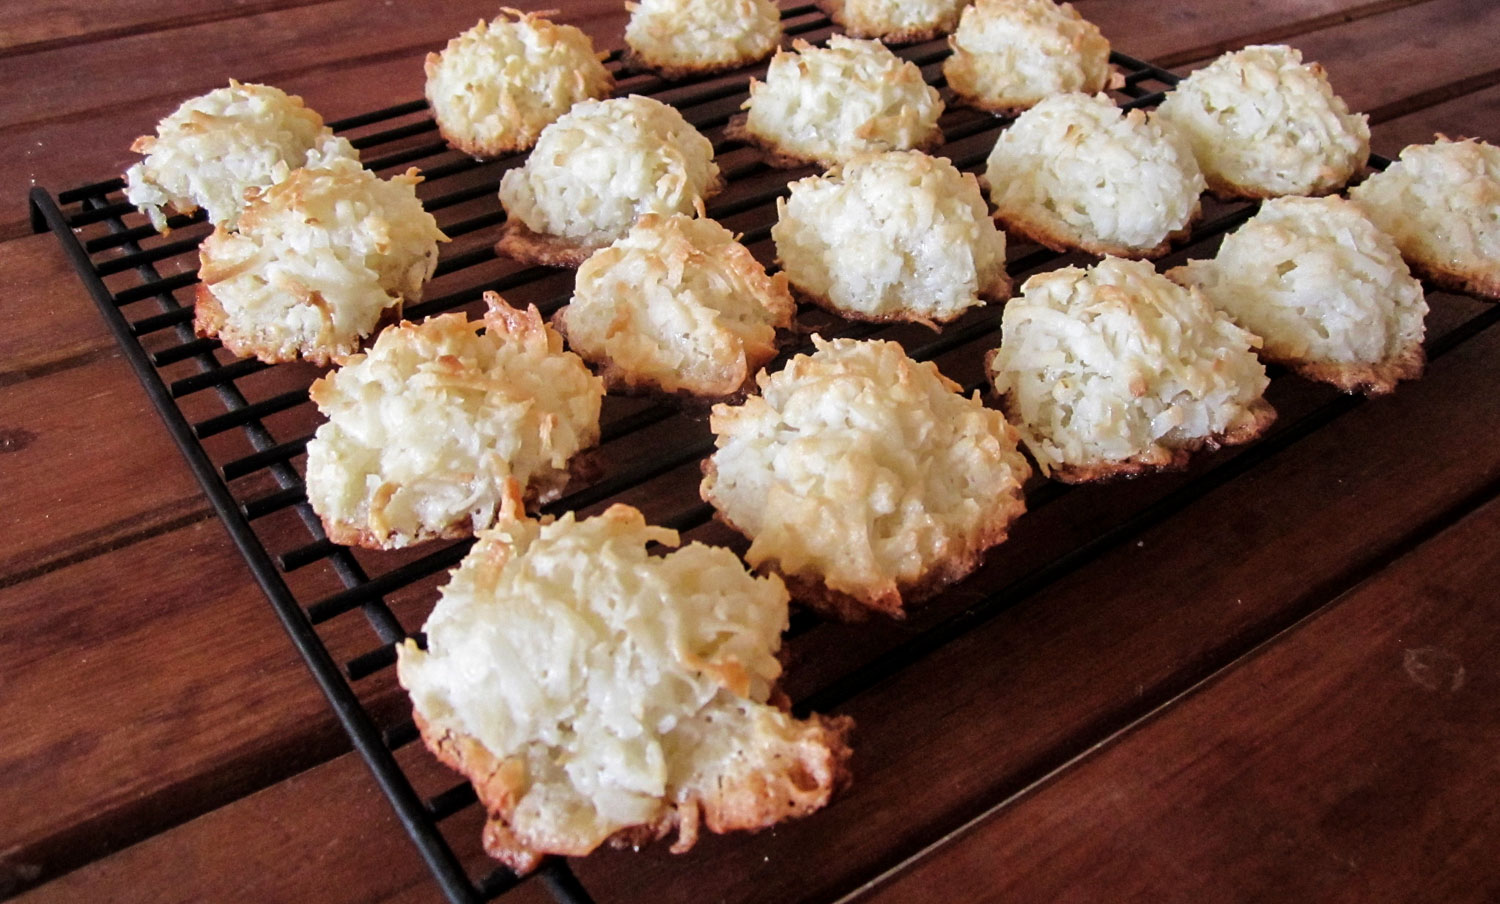 Tray of coconut macaroons cooling.